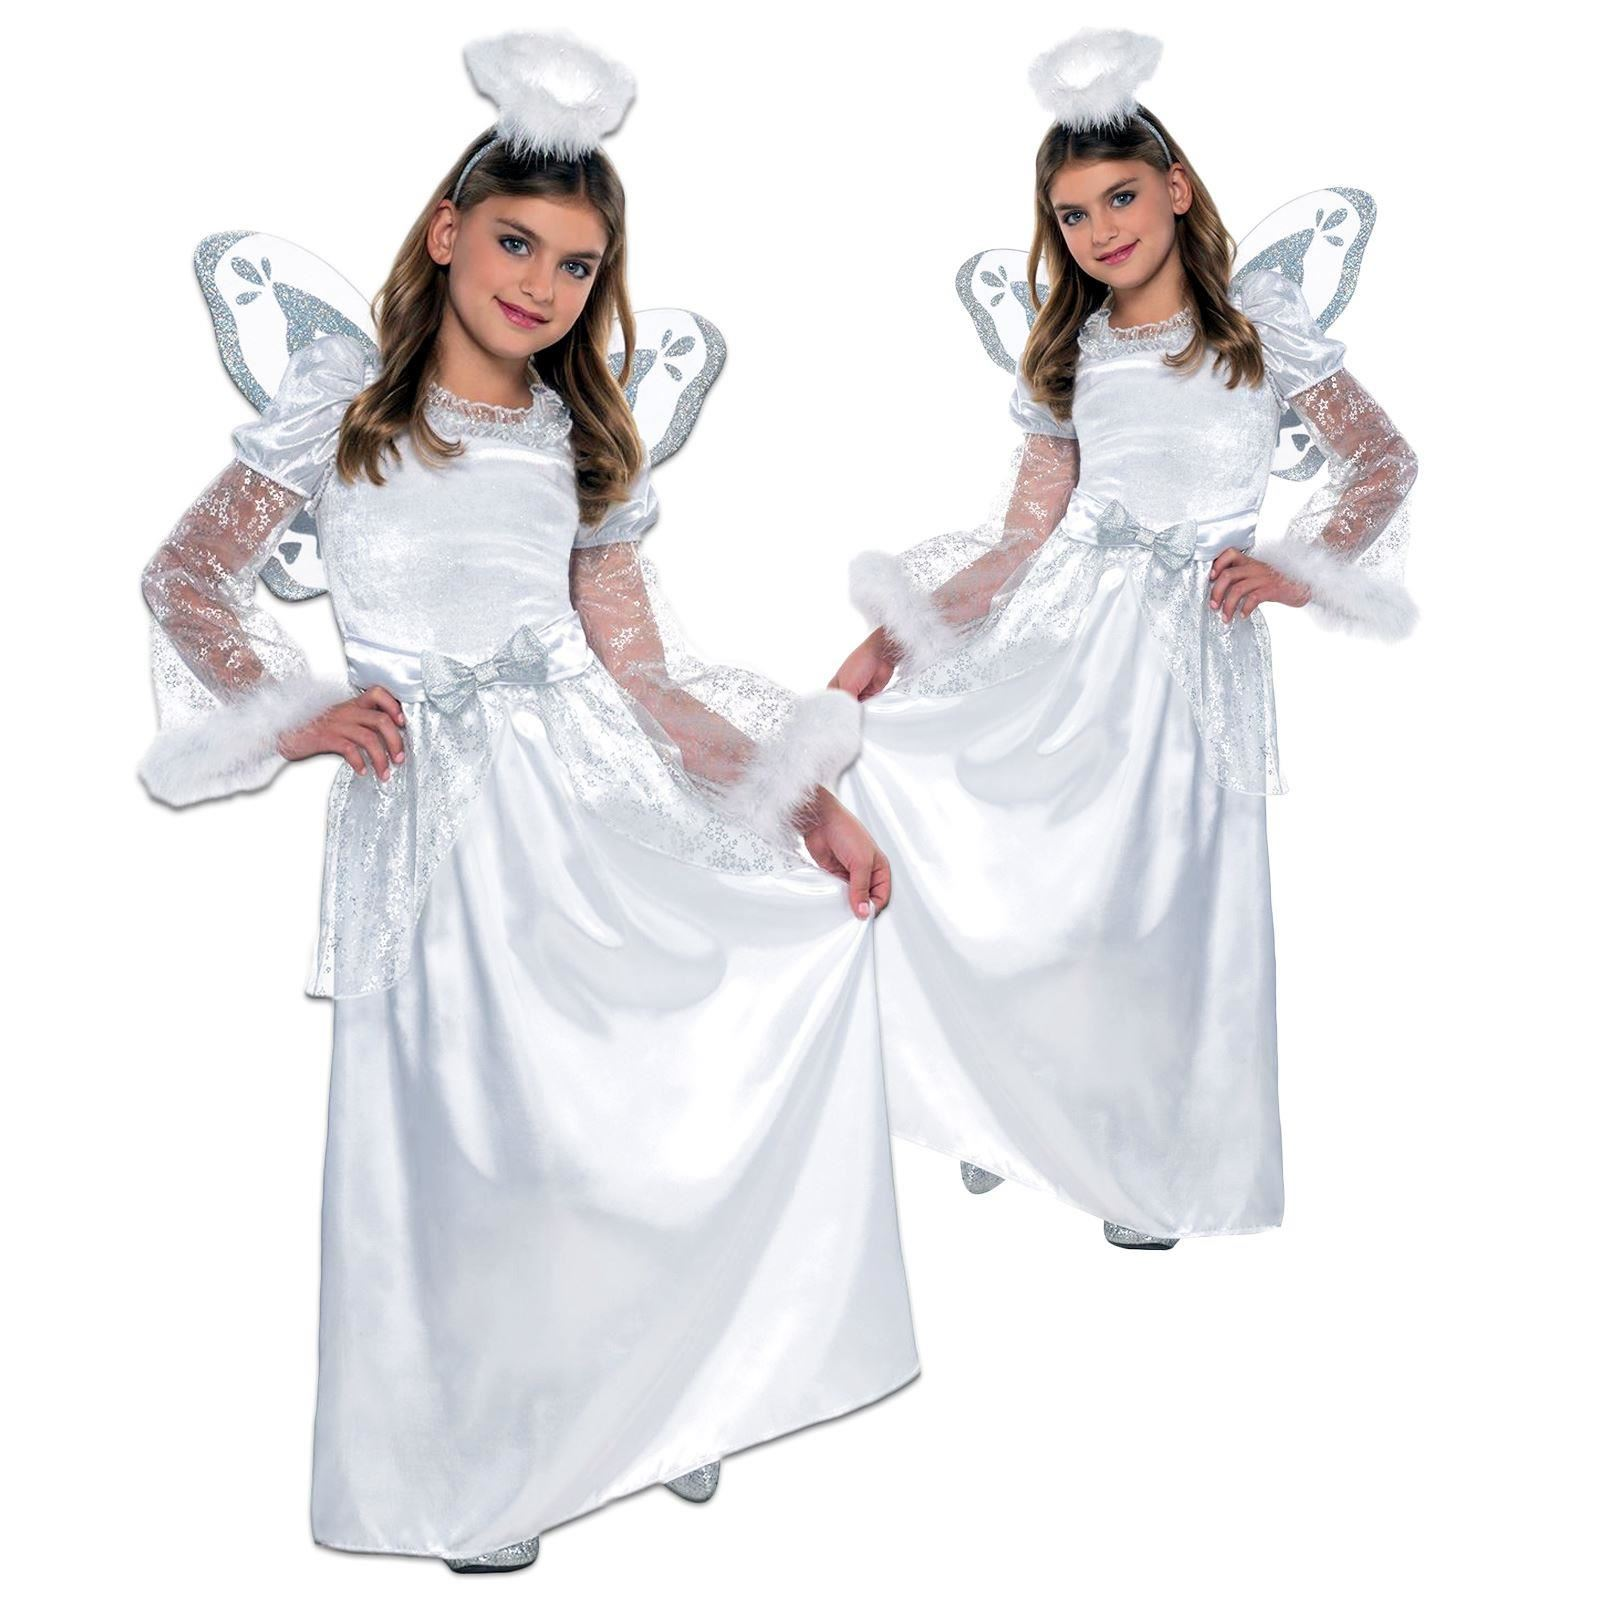 13ab68054 *Girls Deluxe Nativity Play Christmas Angel Gabriel Fancy Dress Costume  Outfit*